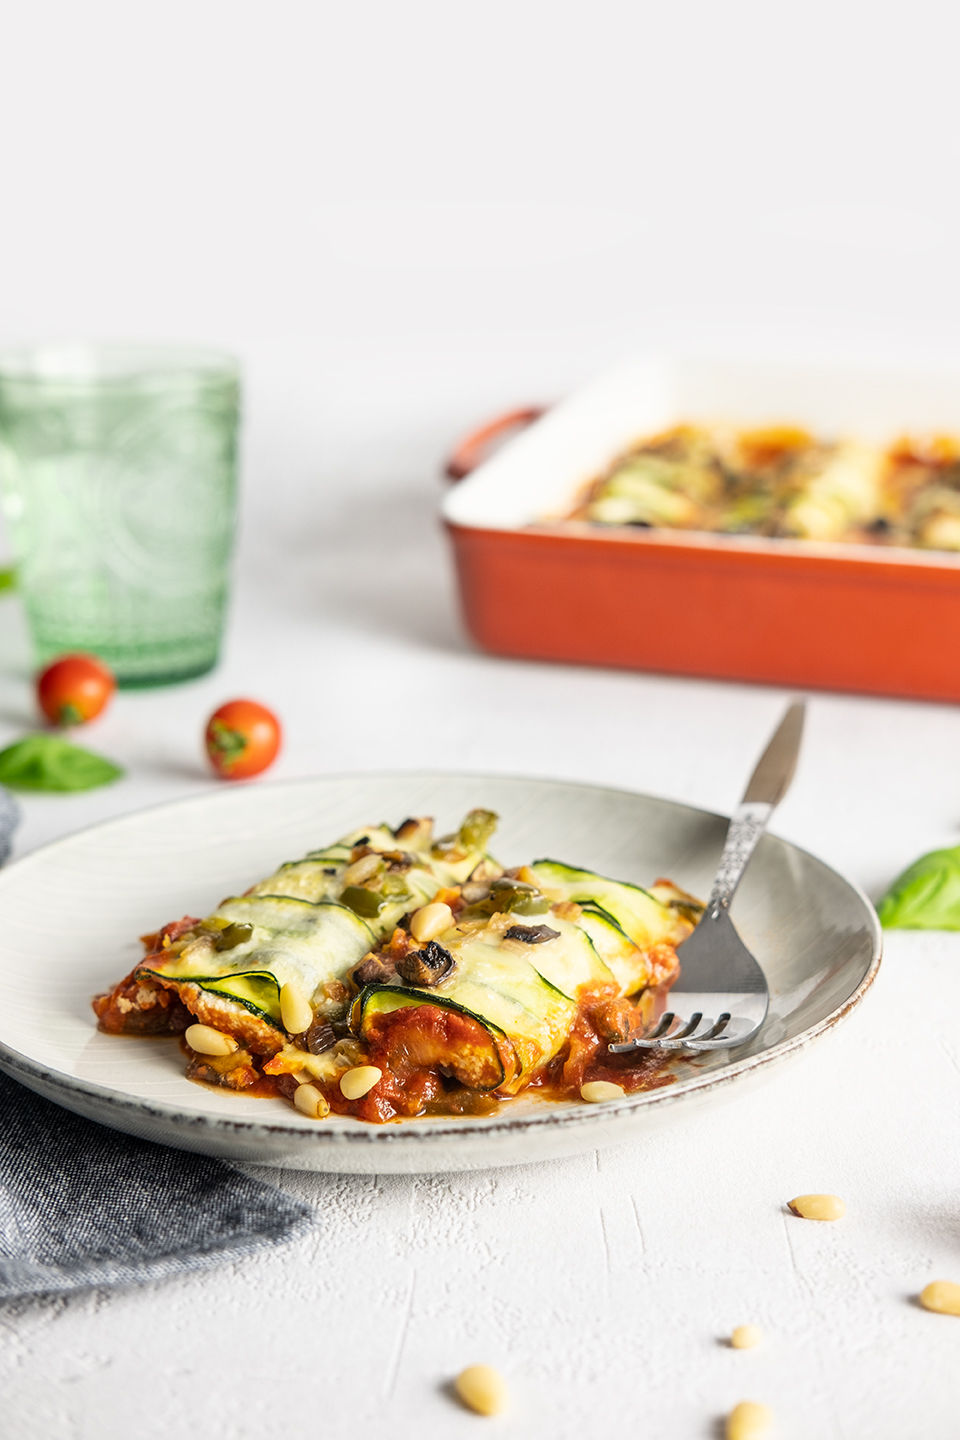 Two Low carb zucchini and ricotta cannelloni served on a grey salad plate.  Casserole dish in background with ice water in a green glass.